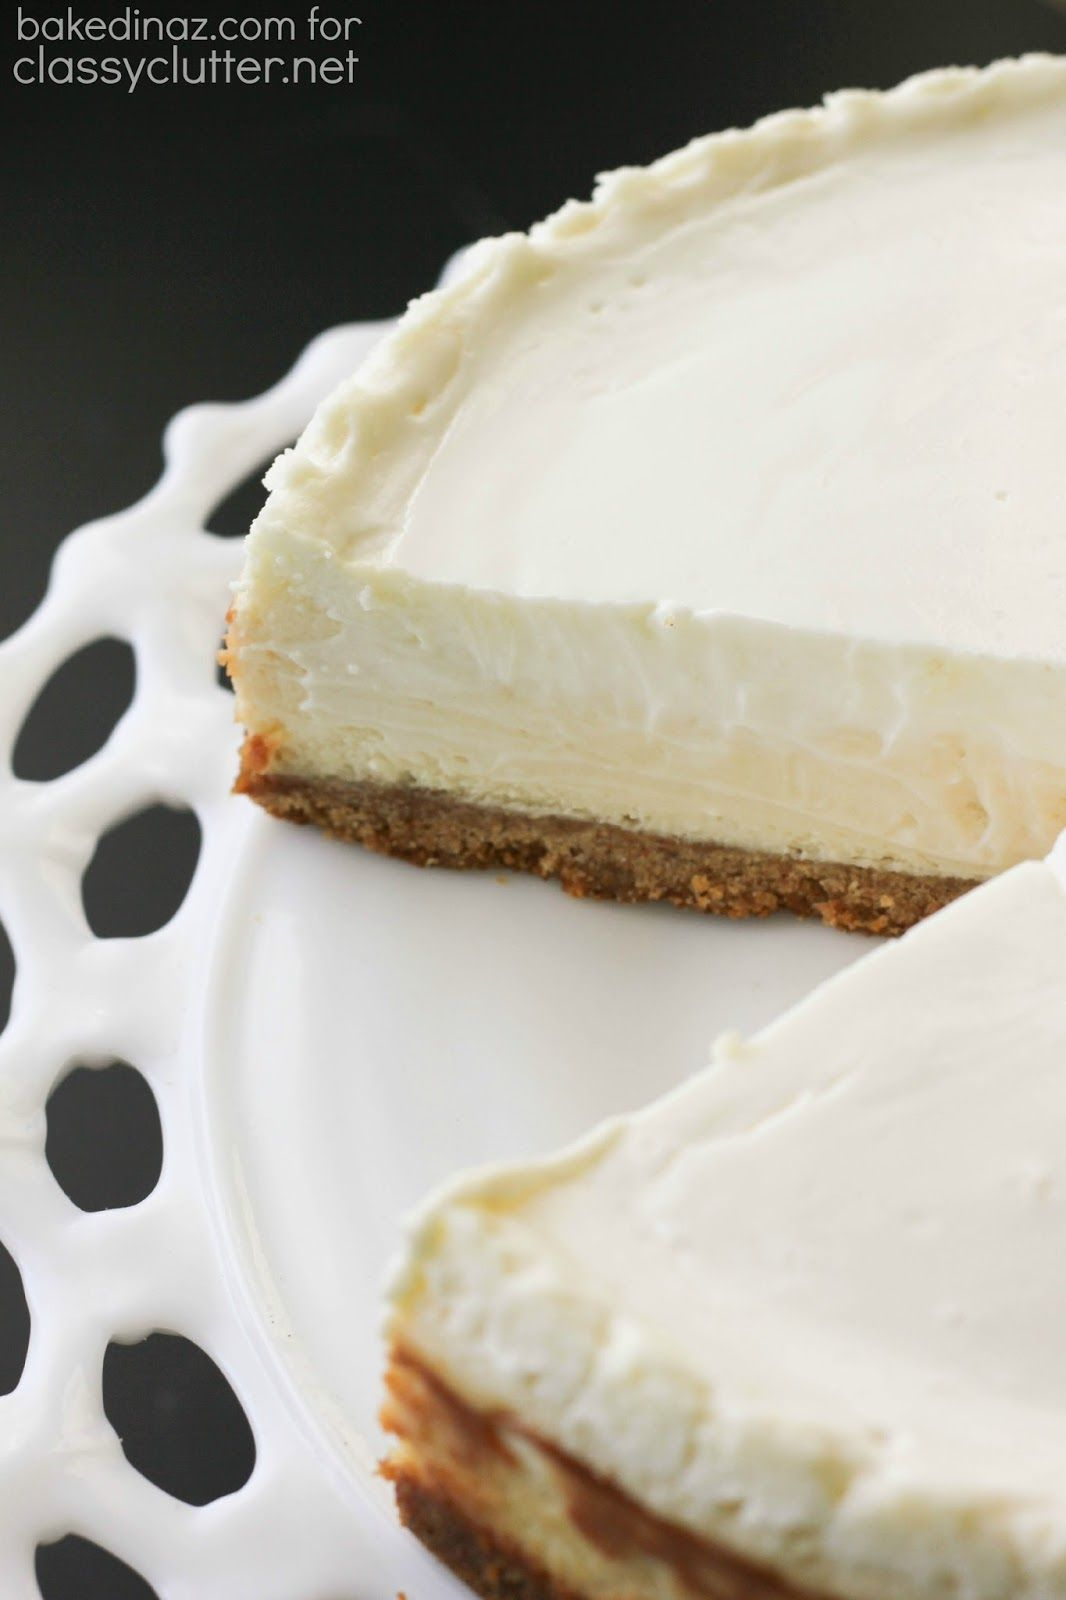 Classic Cheesecake With Sour Cream Topping Classy Clutter Sour Cream Cheesecake Original Cheesecake Recipe Sour Cream Recipes